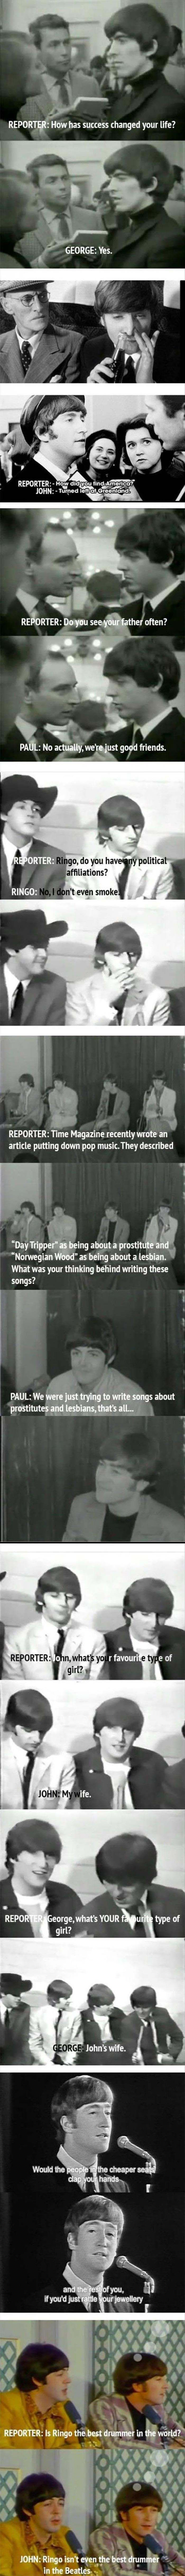 The Beatles Were Masters At Answering Interview Questions 20 Pics.... They were probably high for a bunch of these..... XP